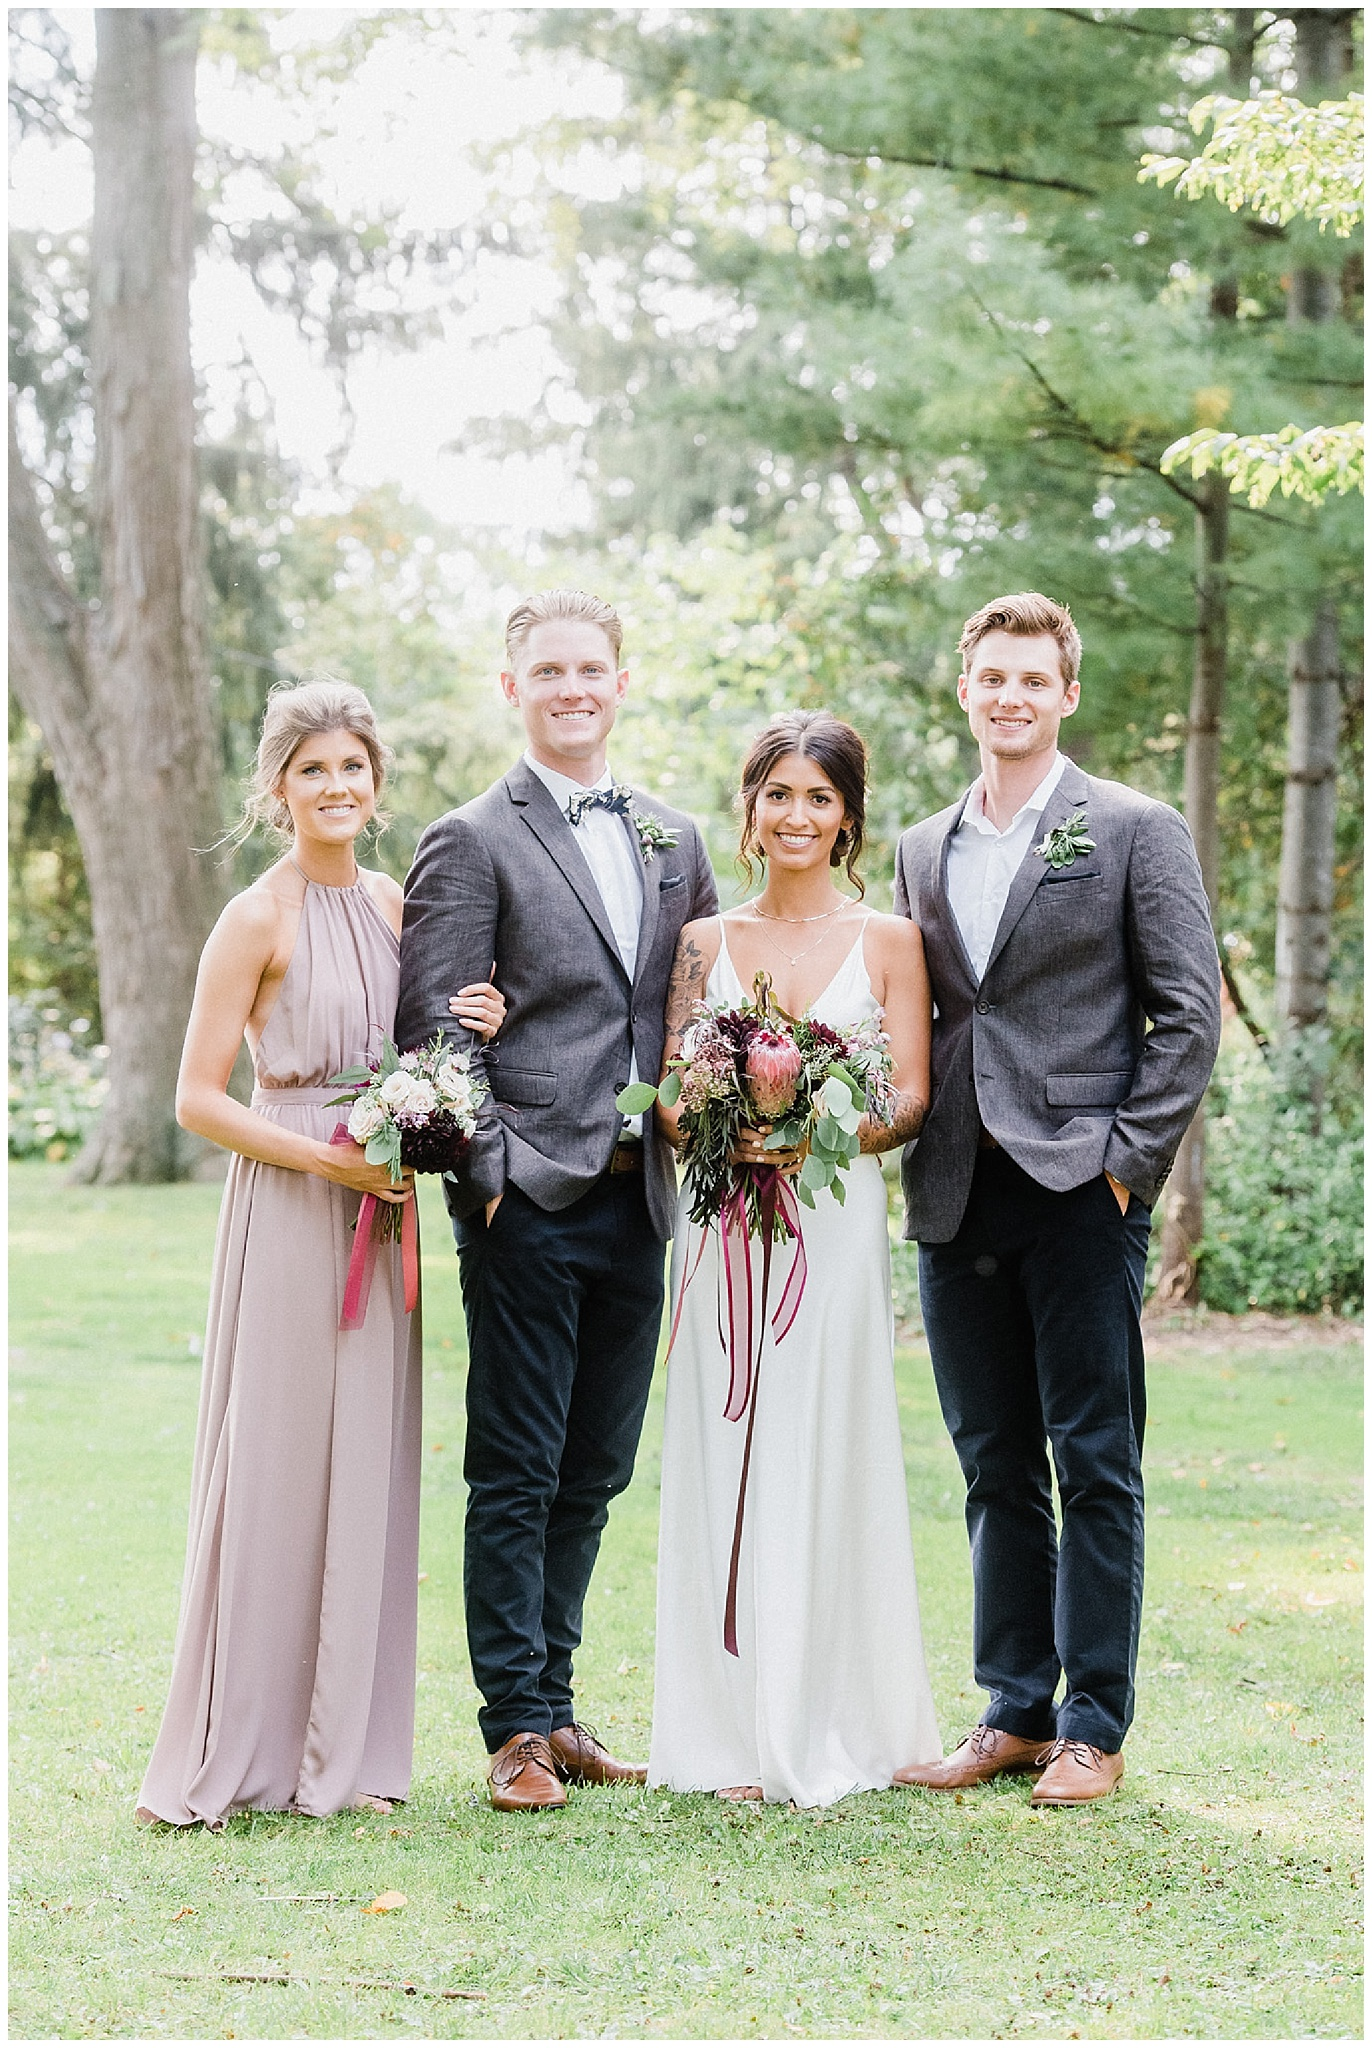 Portraits of bride and groom | Chic, laid back wedding at Victoria Park Pavilion photographed by Jenn Kavanagh Photography